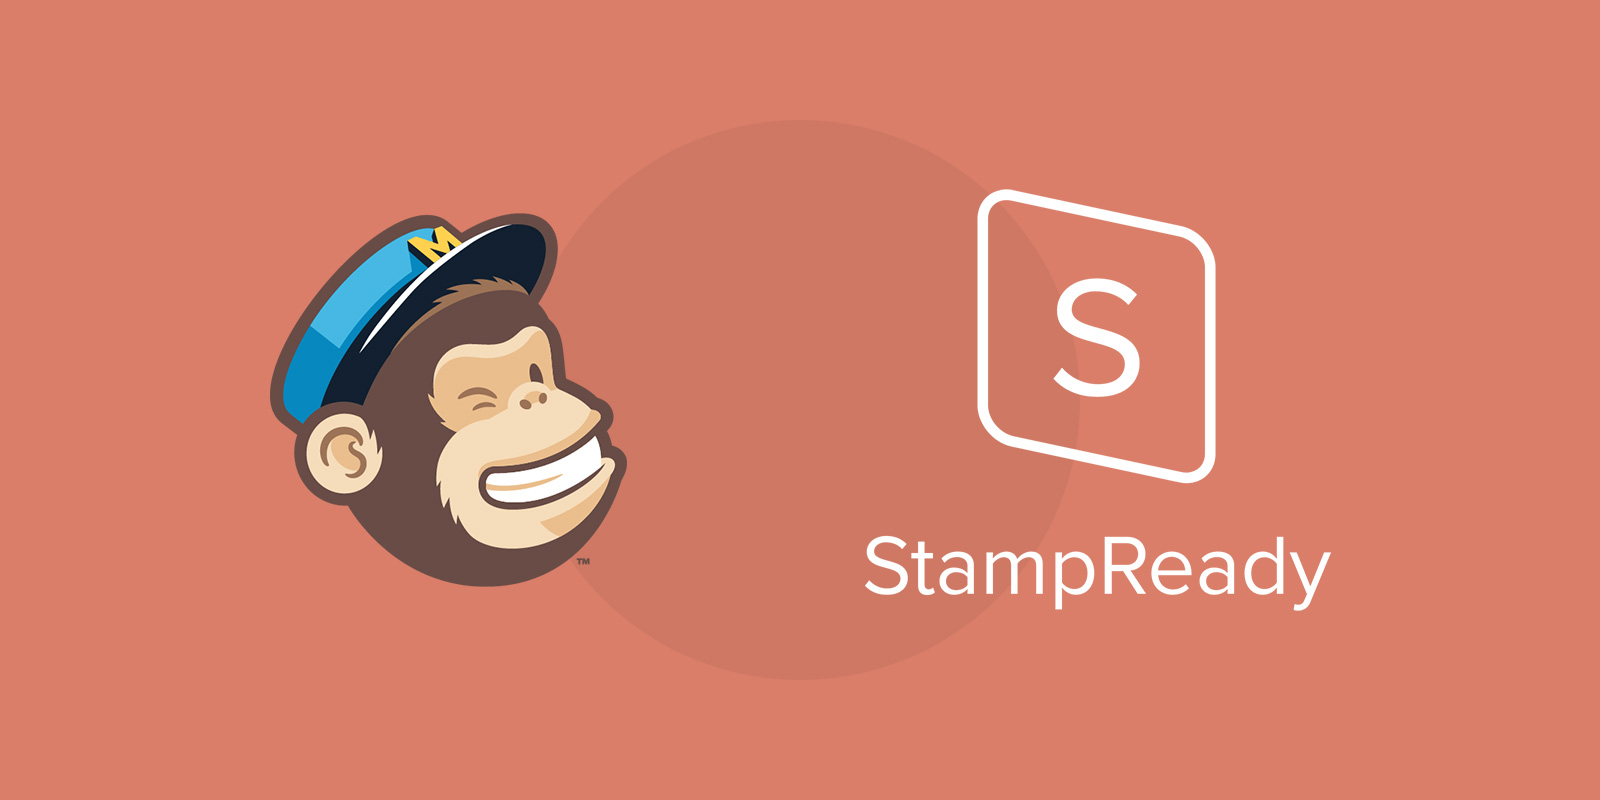 MailChimp vs Stampready